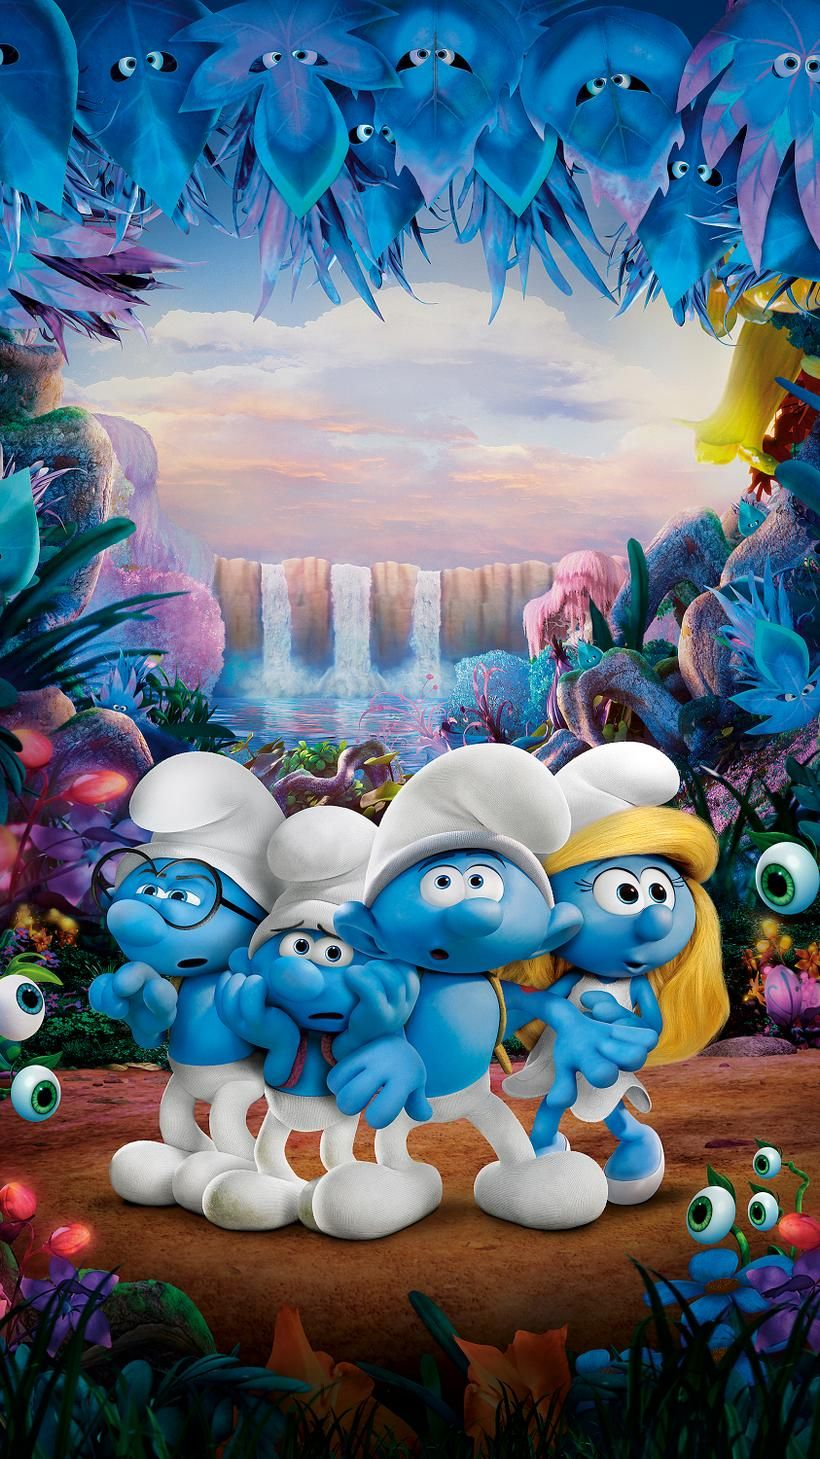 Smurfs The Lost Village 2017 Phone Wallpaper Moviemania Smurfs Lost Village Cartoon Wallpaper